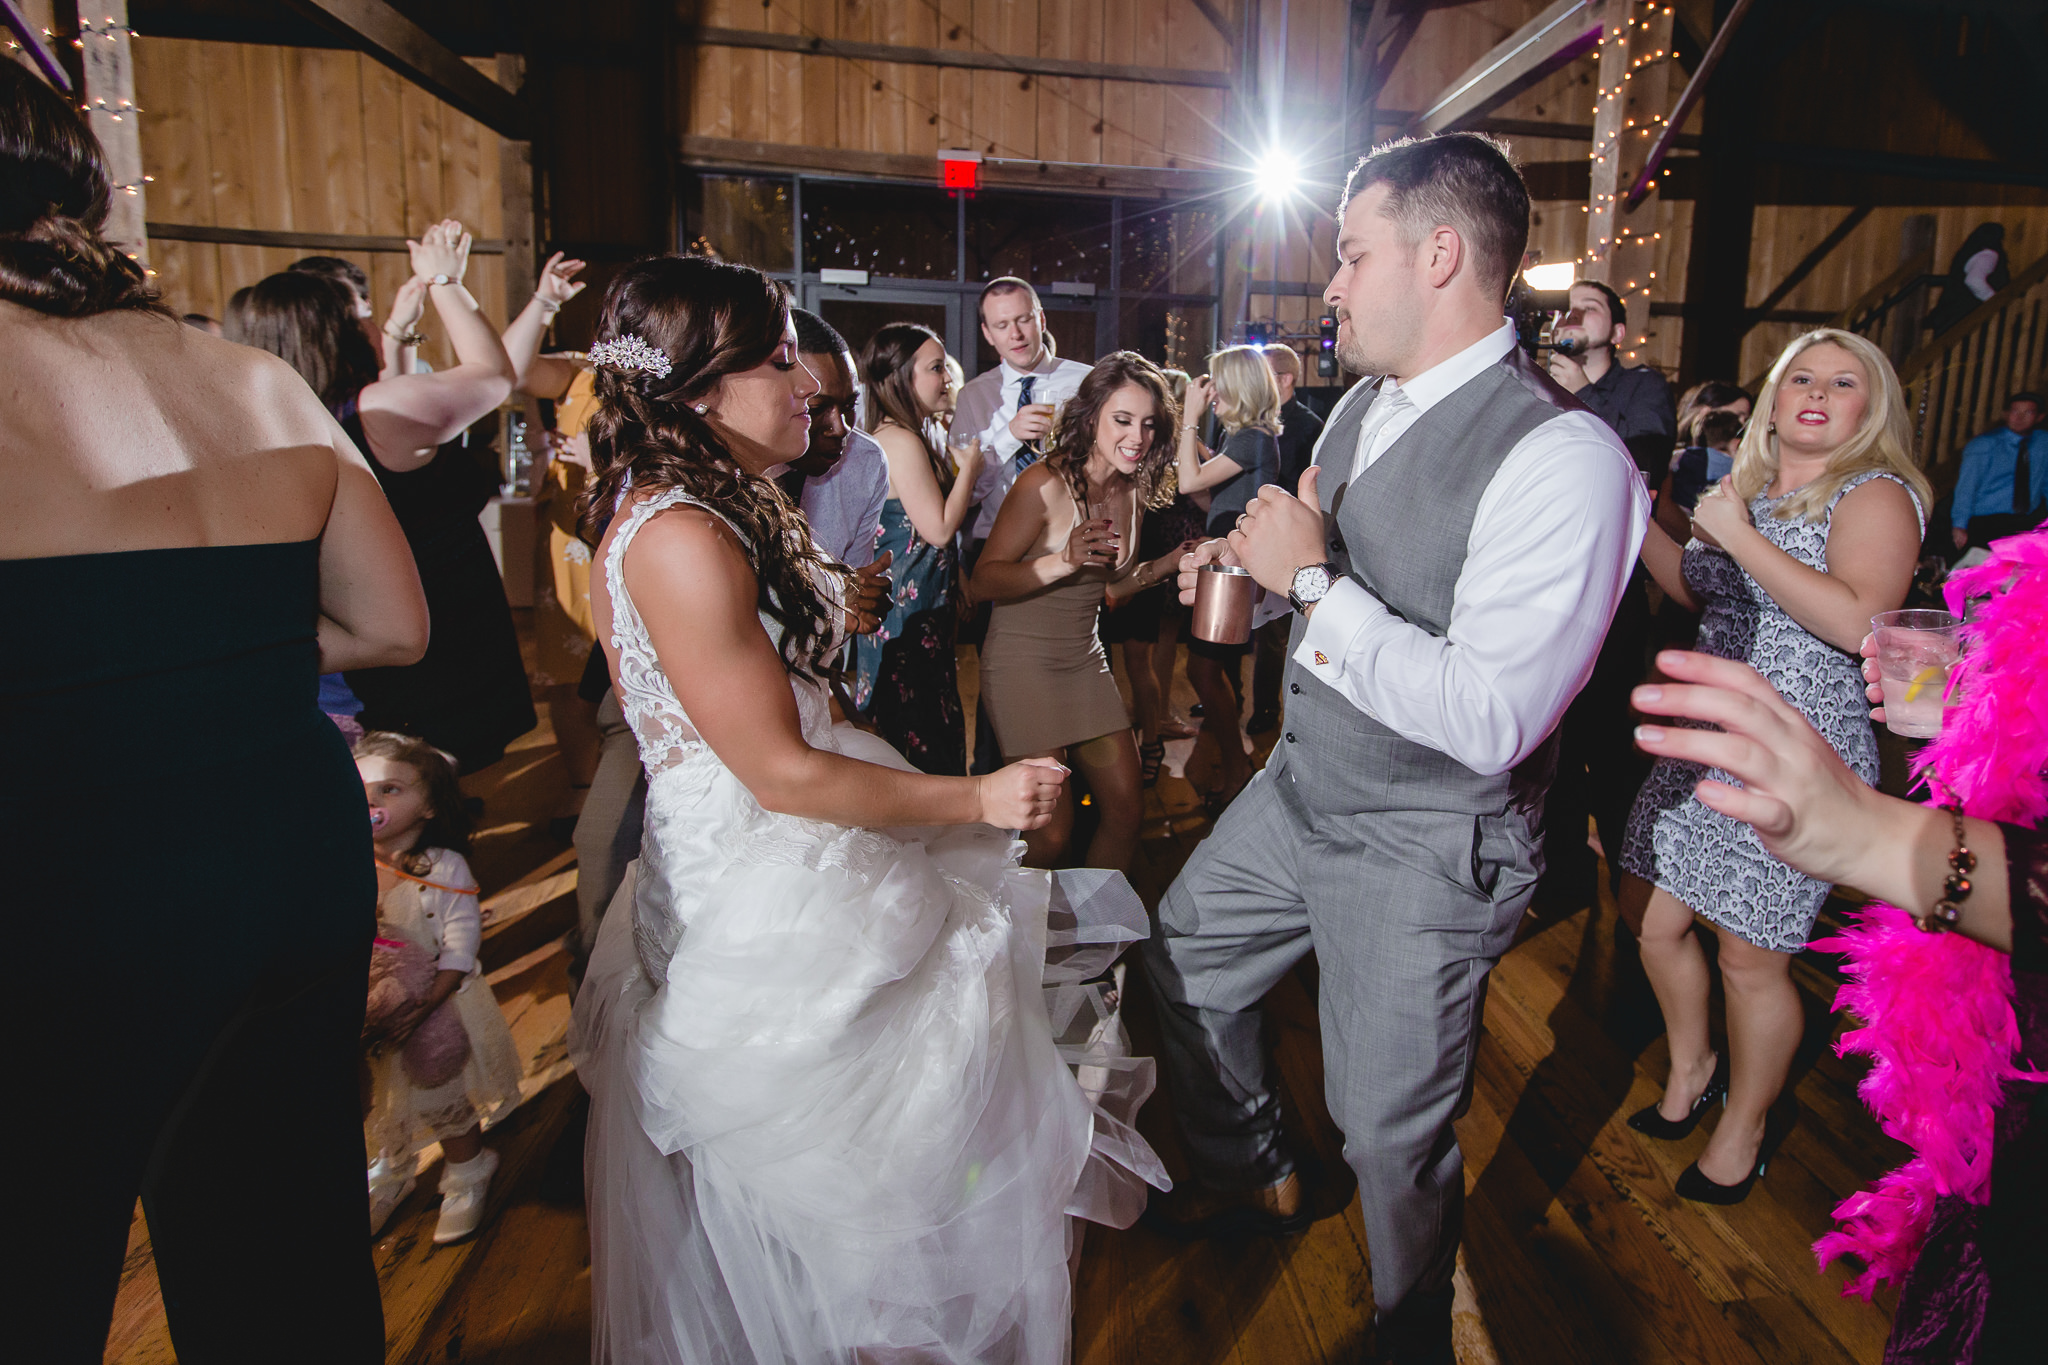 Bride and groom bust a move at their White Barn wedding